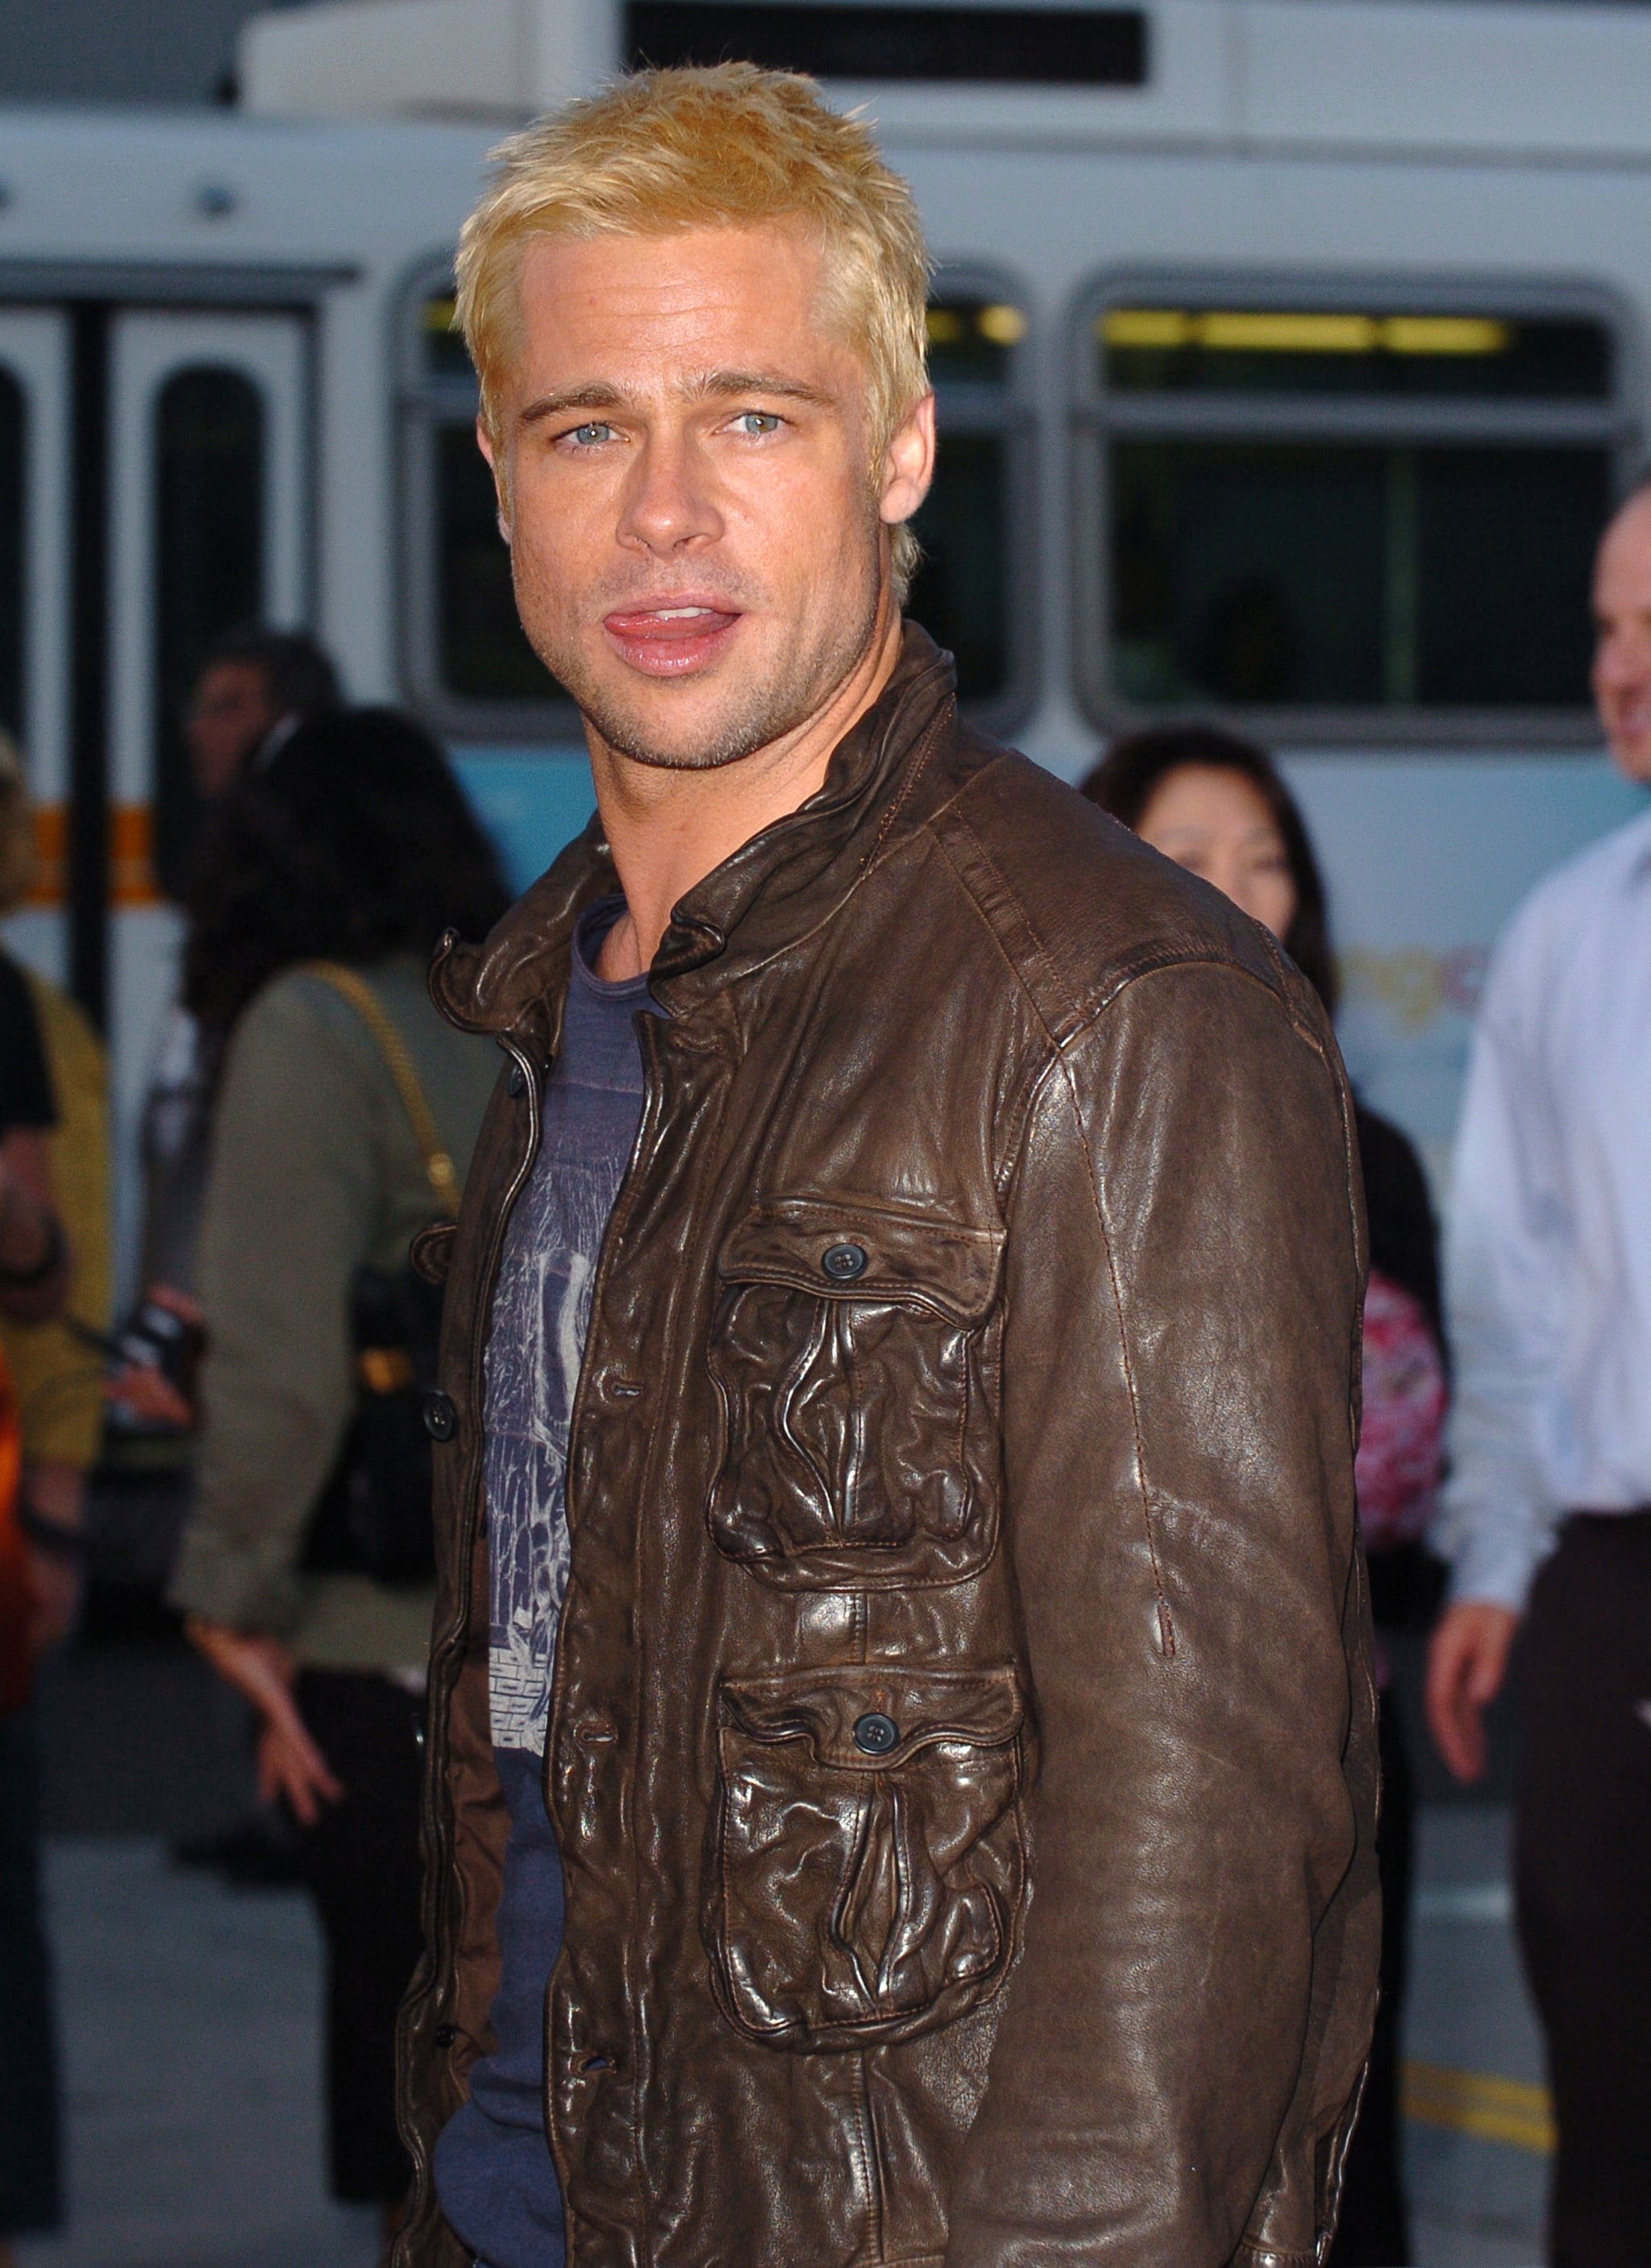 a bleachblonde brad pitt said quothey girlquot to the crowd as